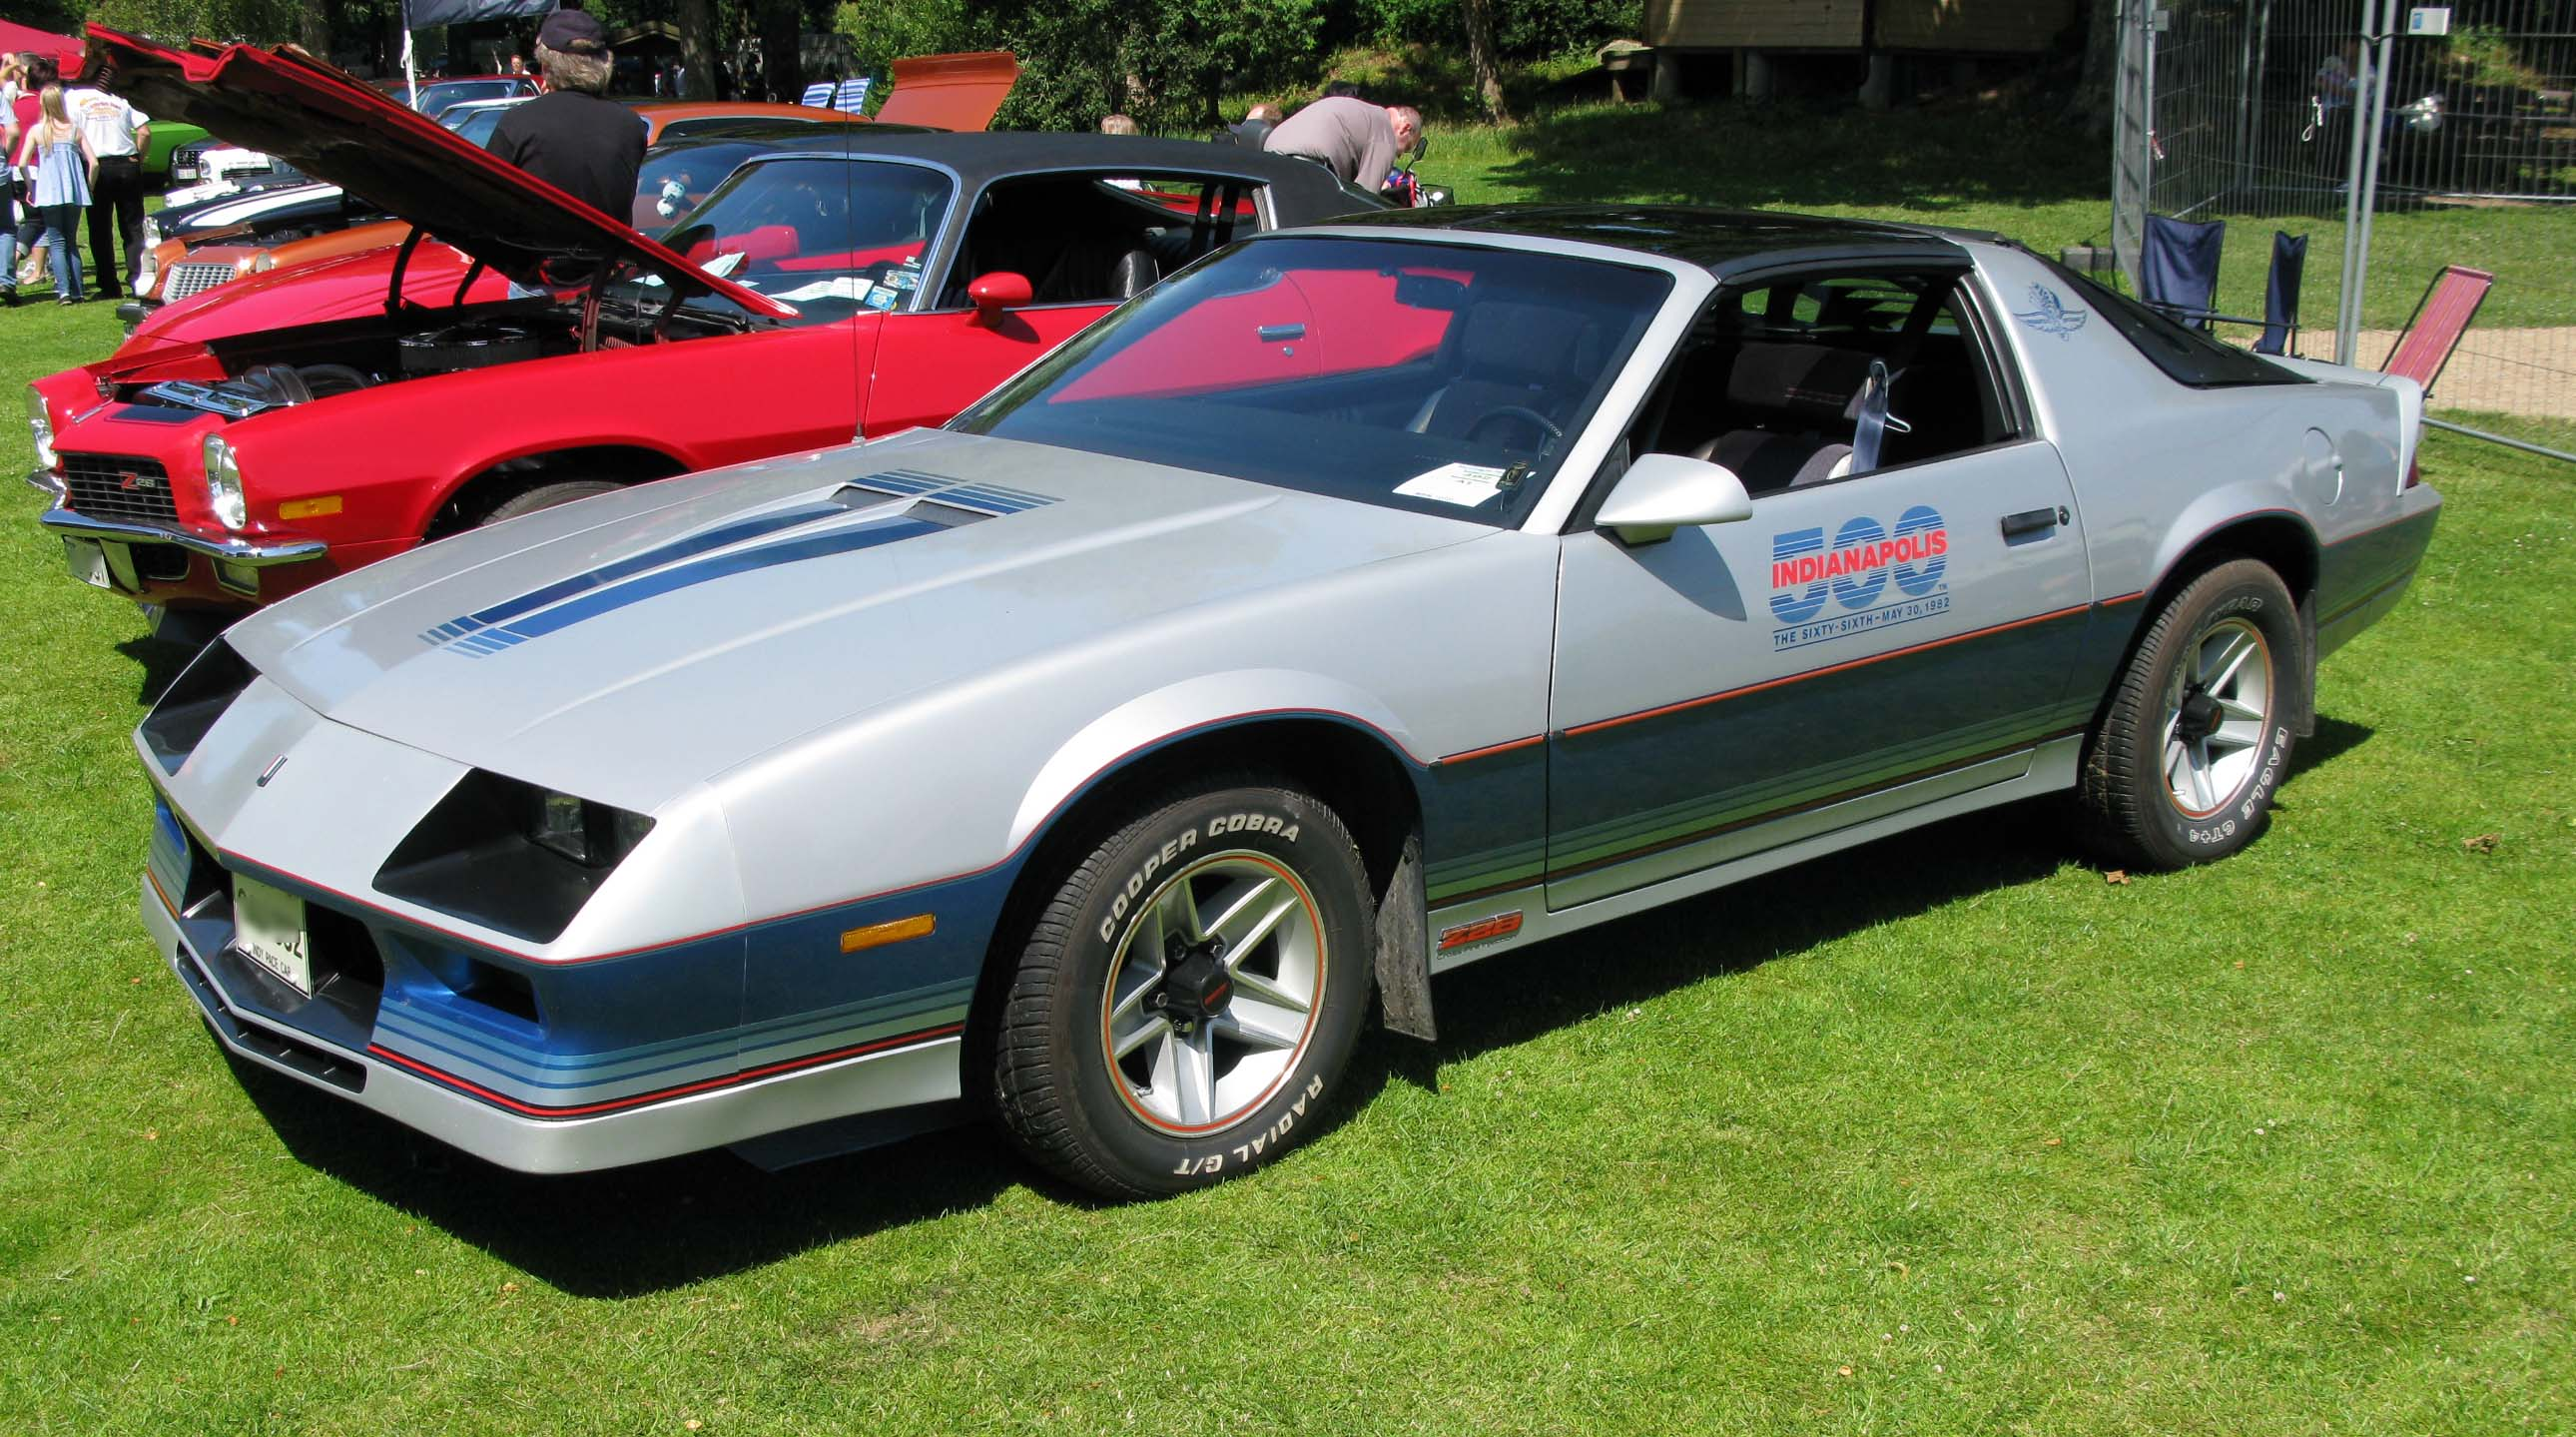 file 1982 camaro z28 pace car wikimedia commons. Black Bedroom Furniture Sets. Home Design Ideas